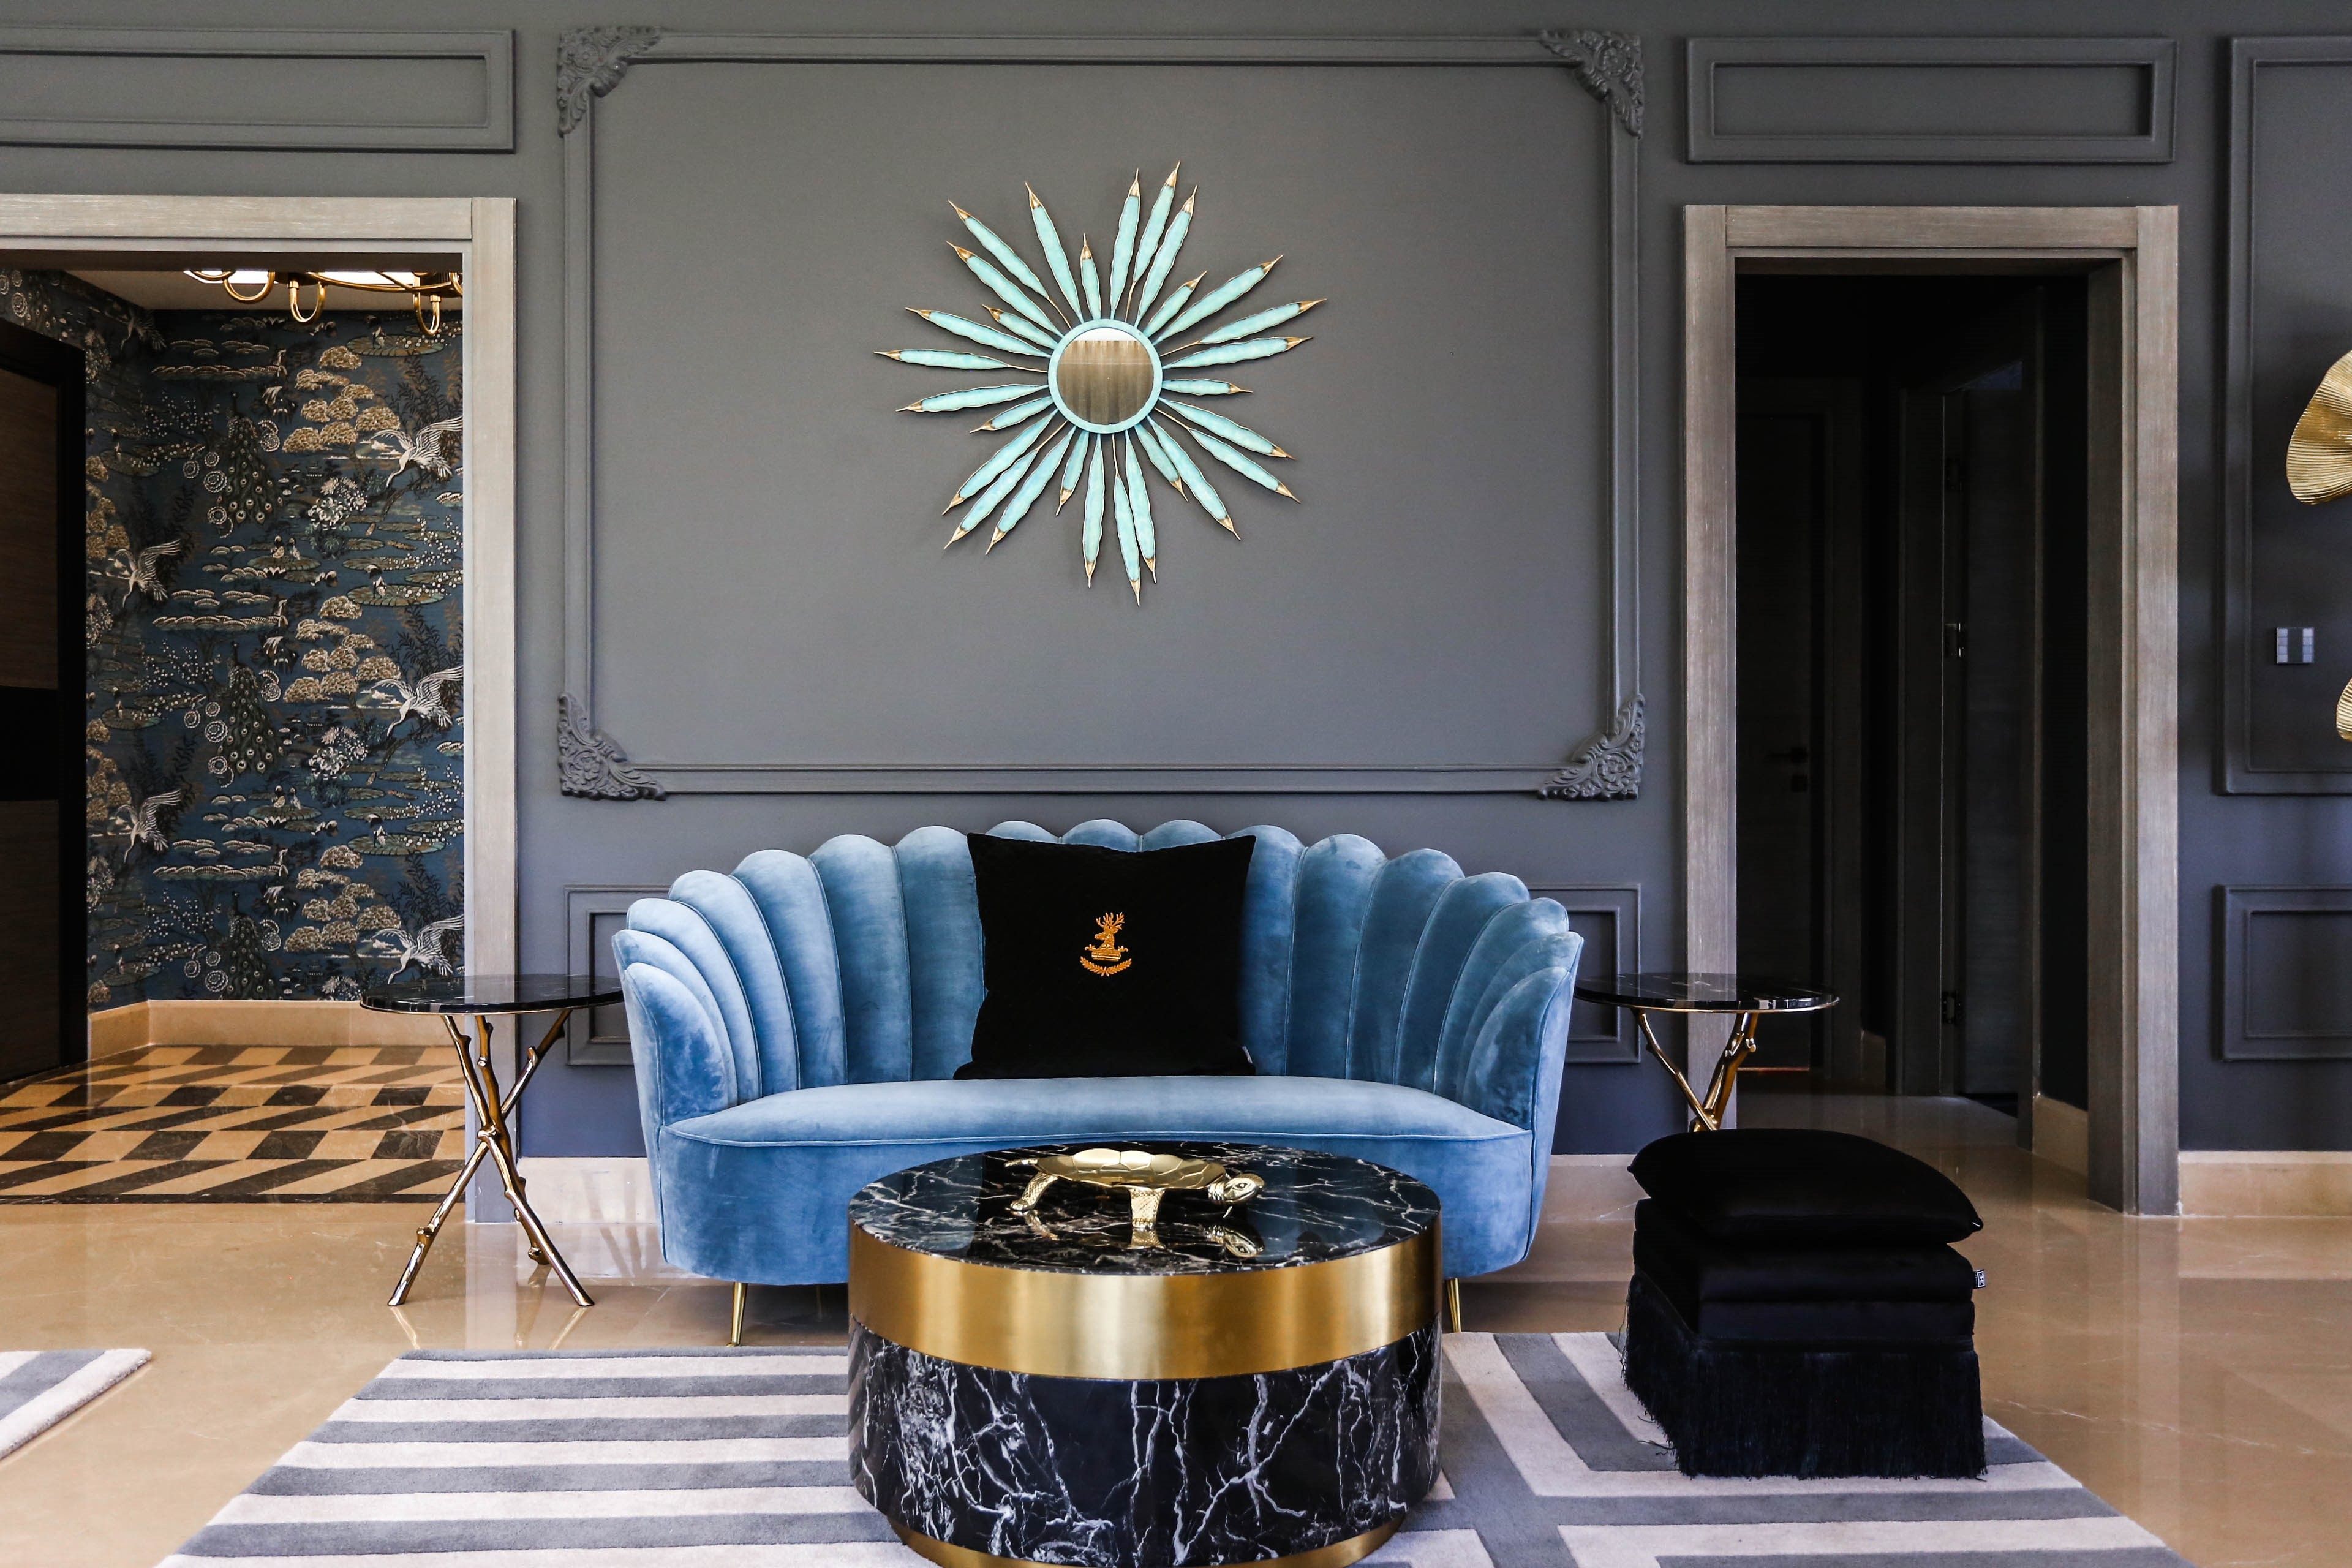 Luxury Living Room Ideas to Love from Some of Our Favorite Features